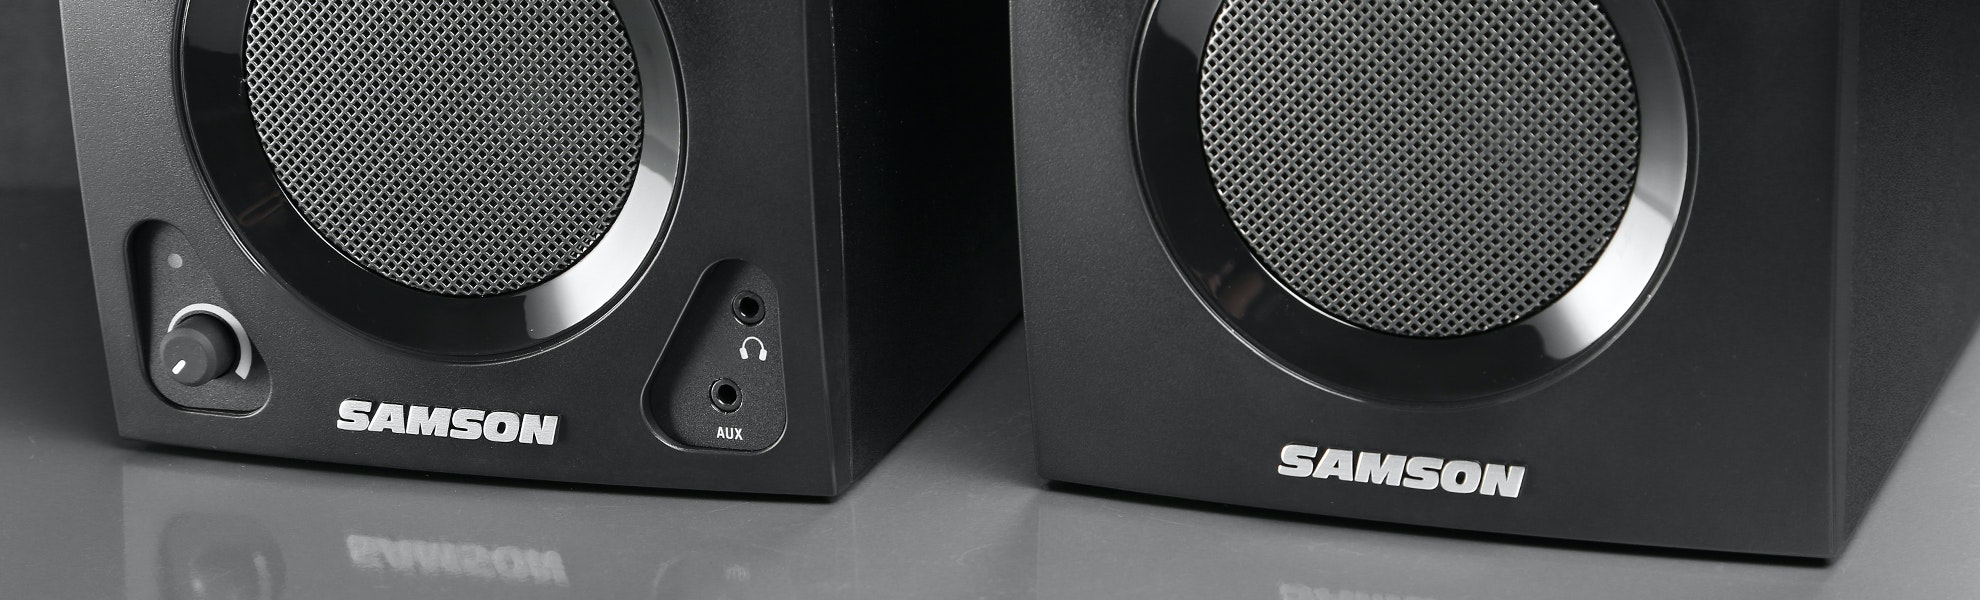 Samson MediaOne BT3 Active Studio Monitors